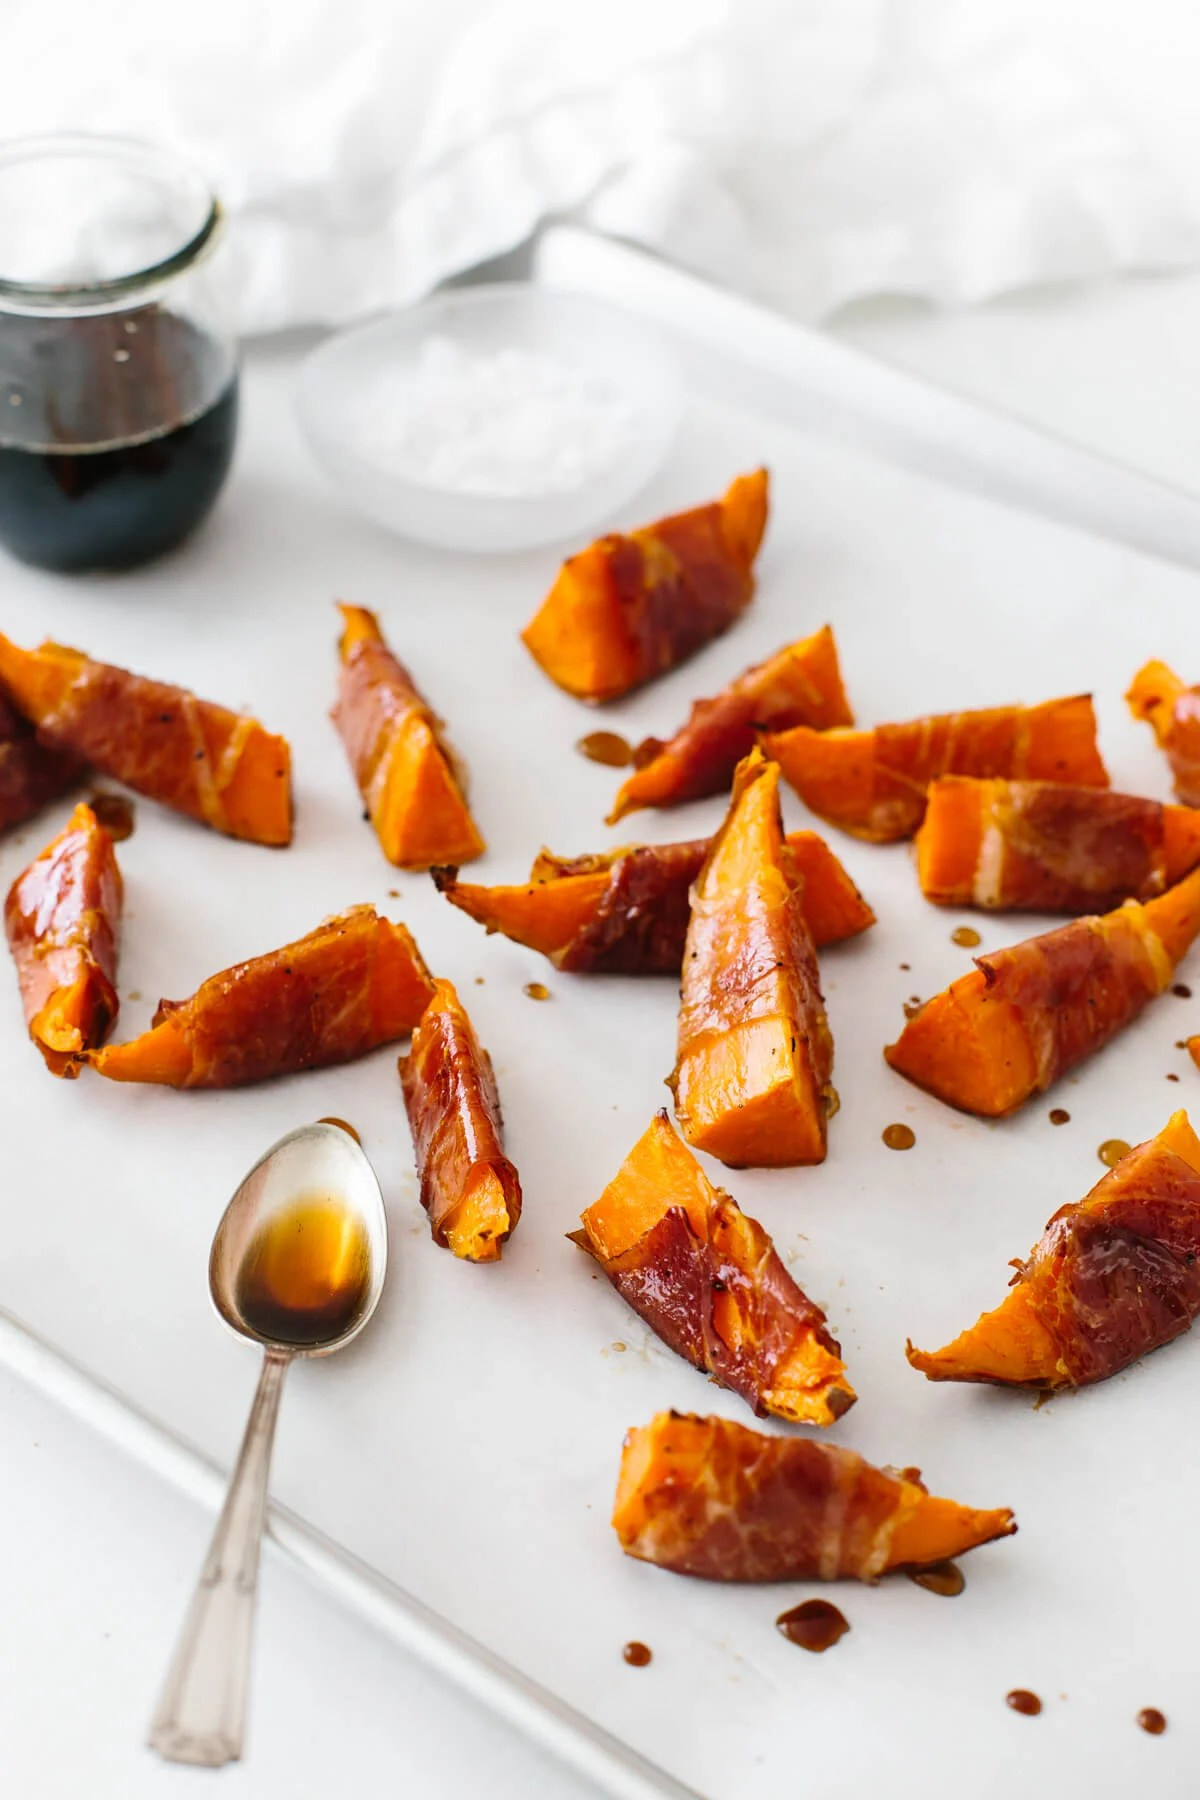 Sweet potatoes wrapped in prosciutto.